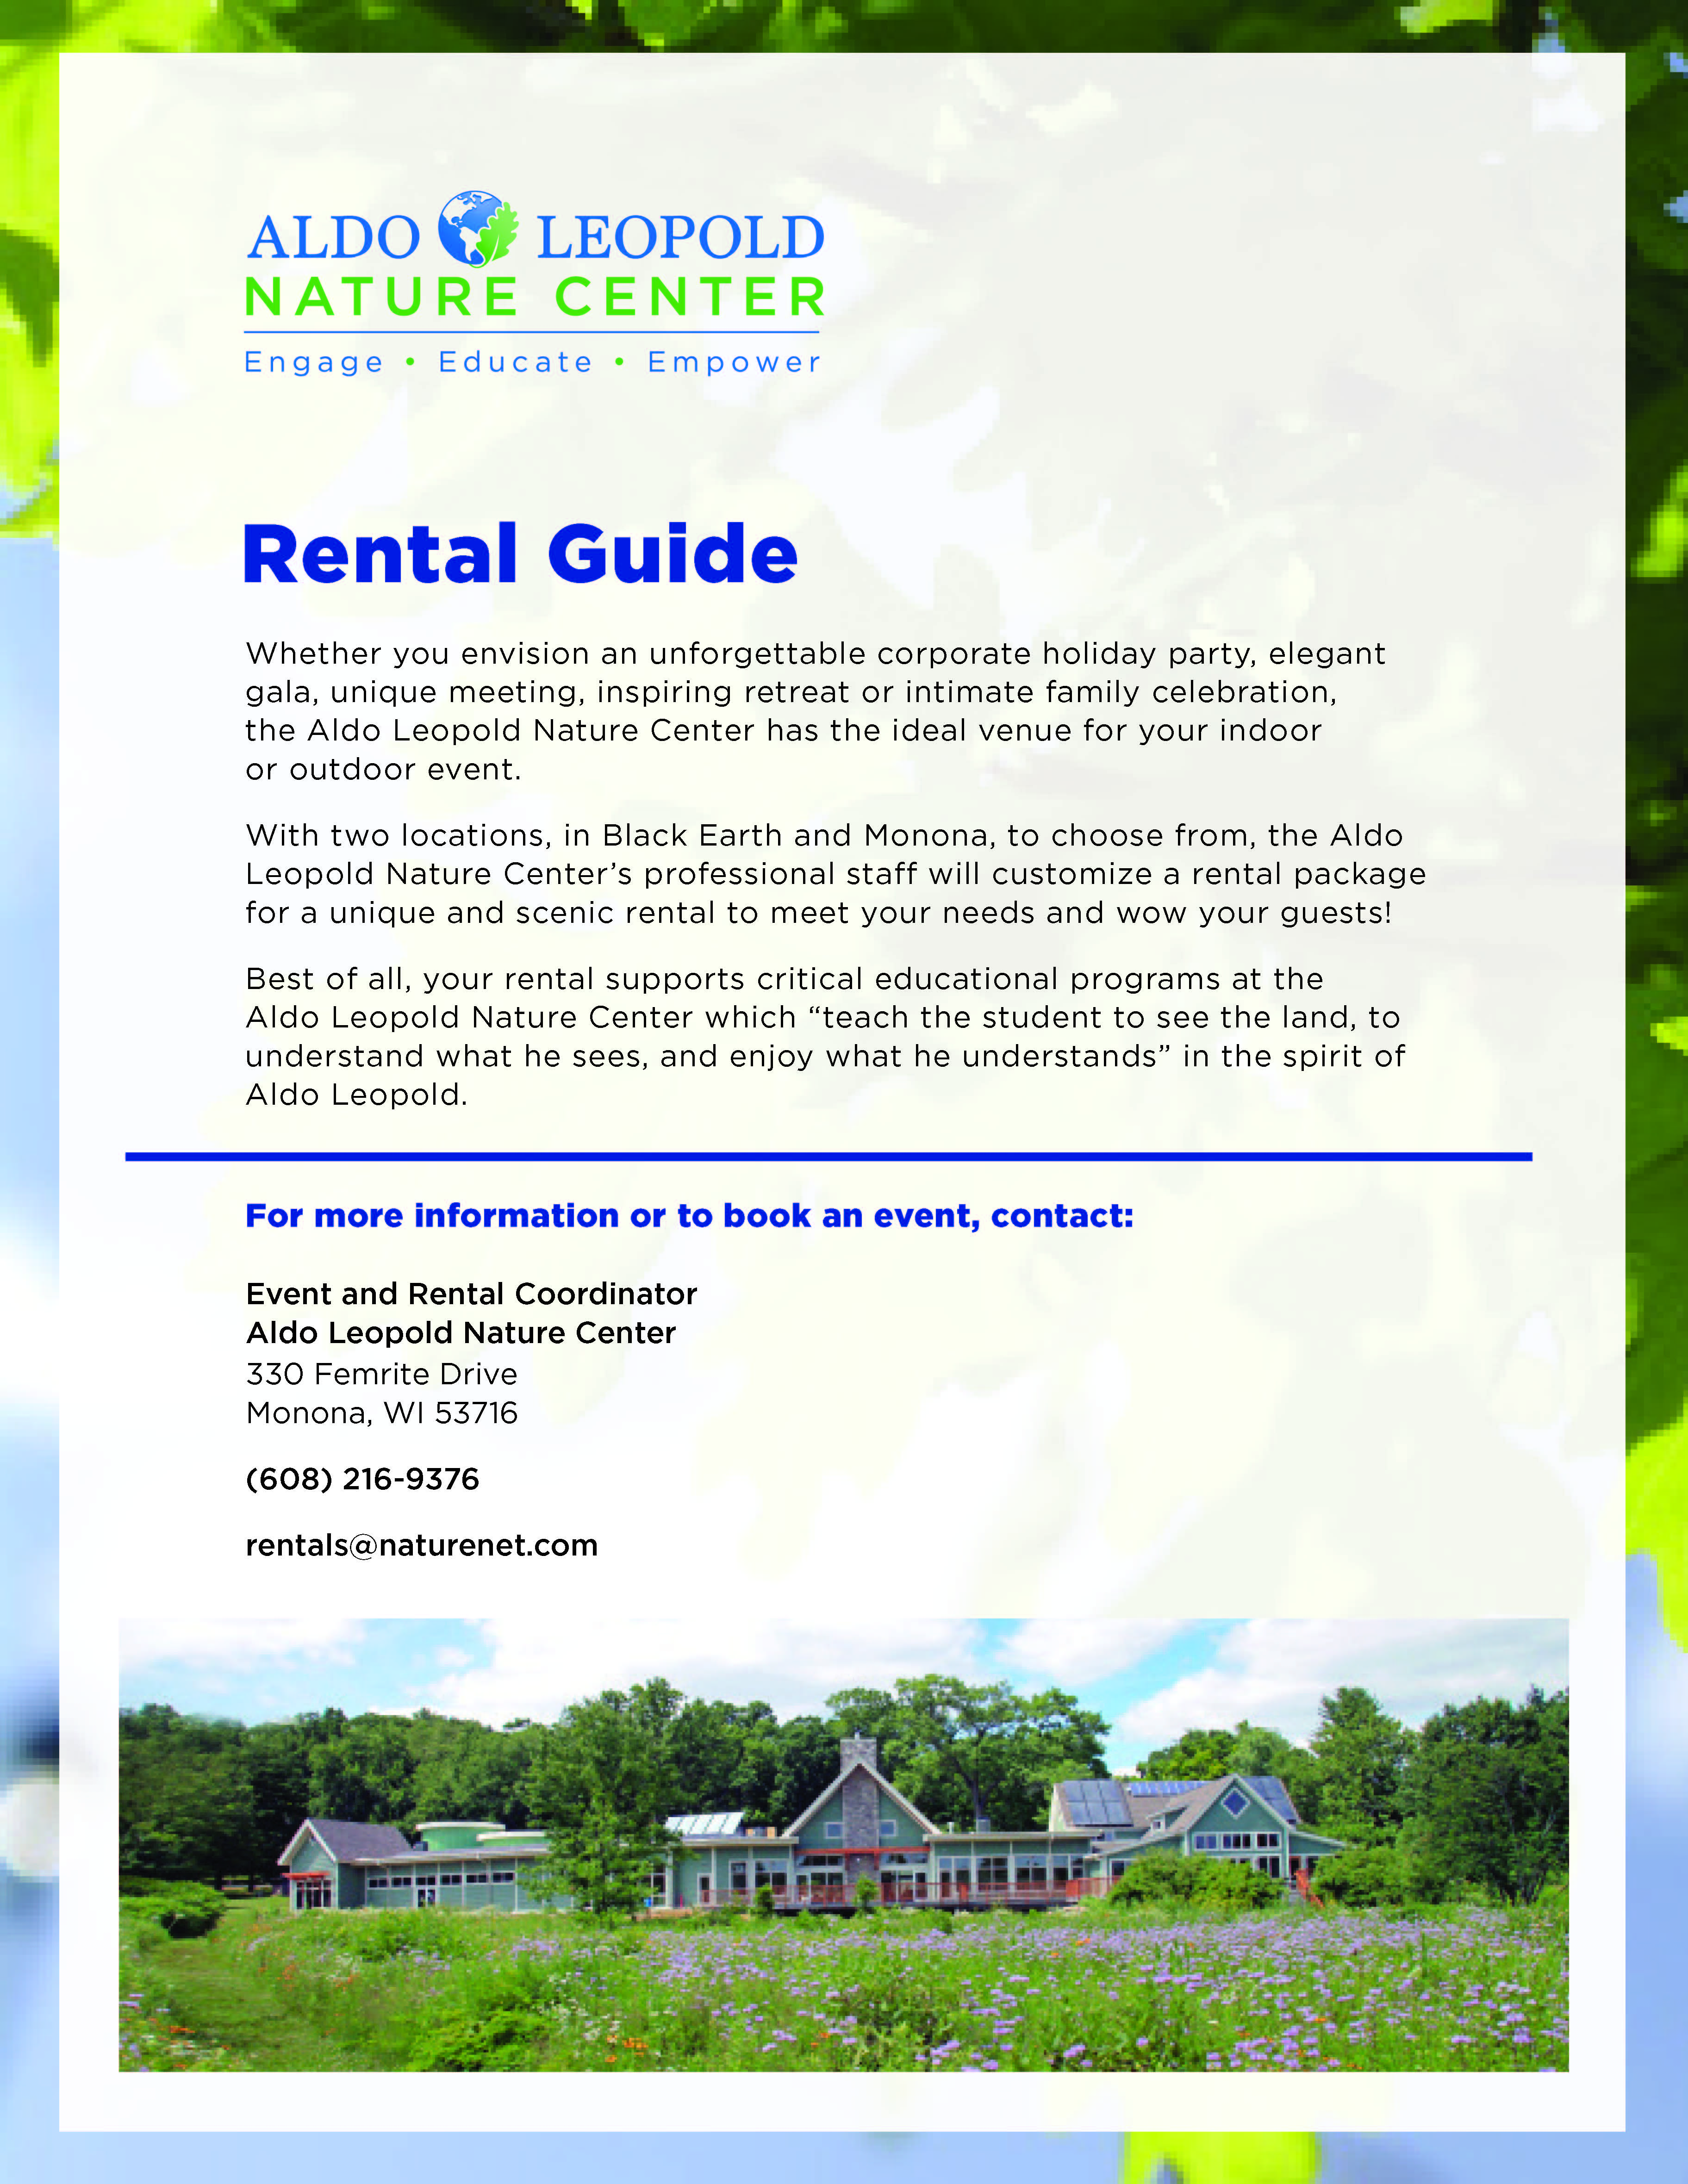 2014 - Rental Guide - page 1 for web link